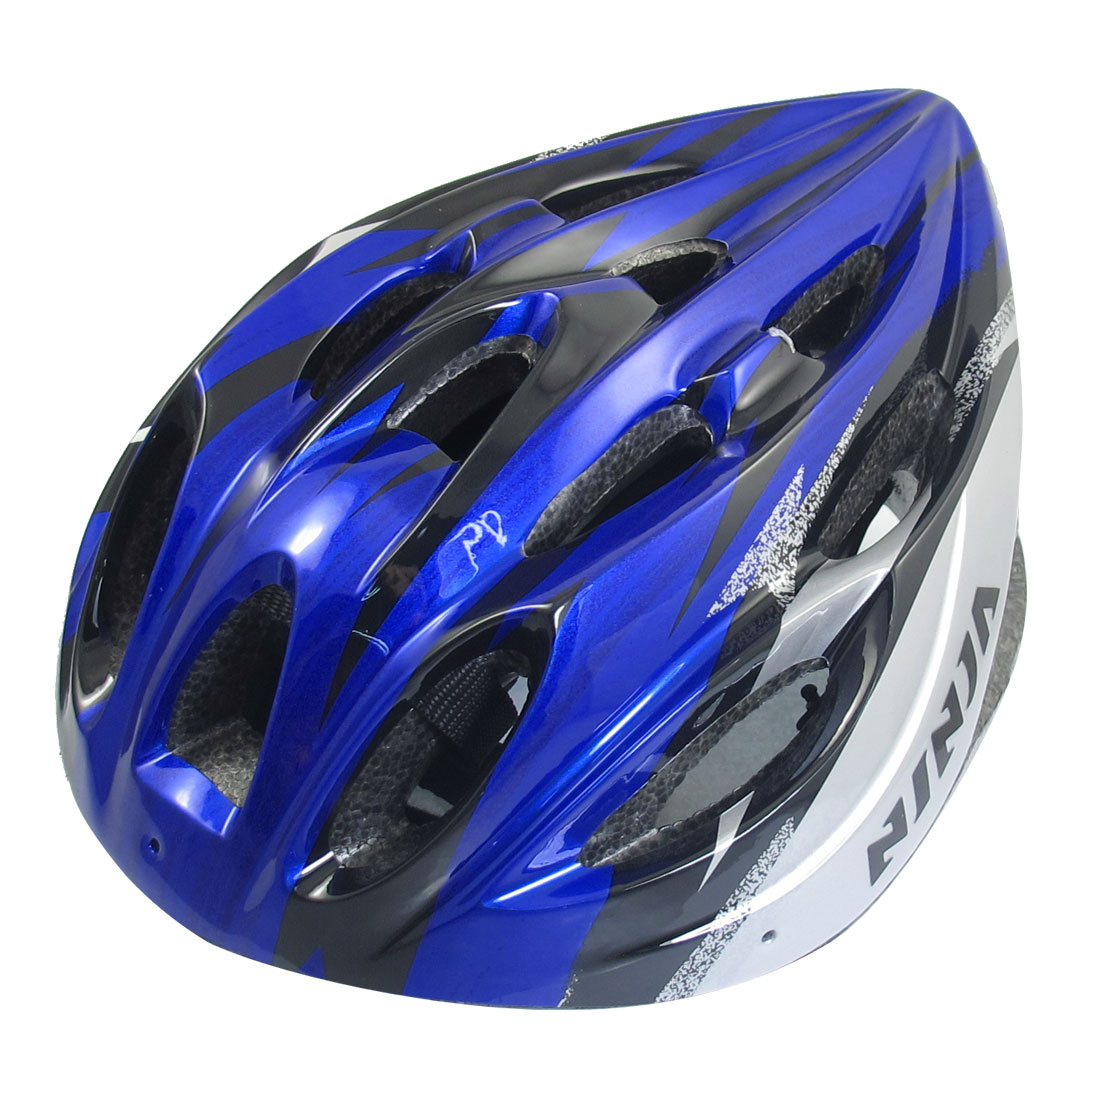 Unique Bargains Women Men Skateboard Skiing Racing Bicycle Bike Sports Helmet Blue Black Silvery by